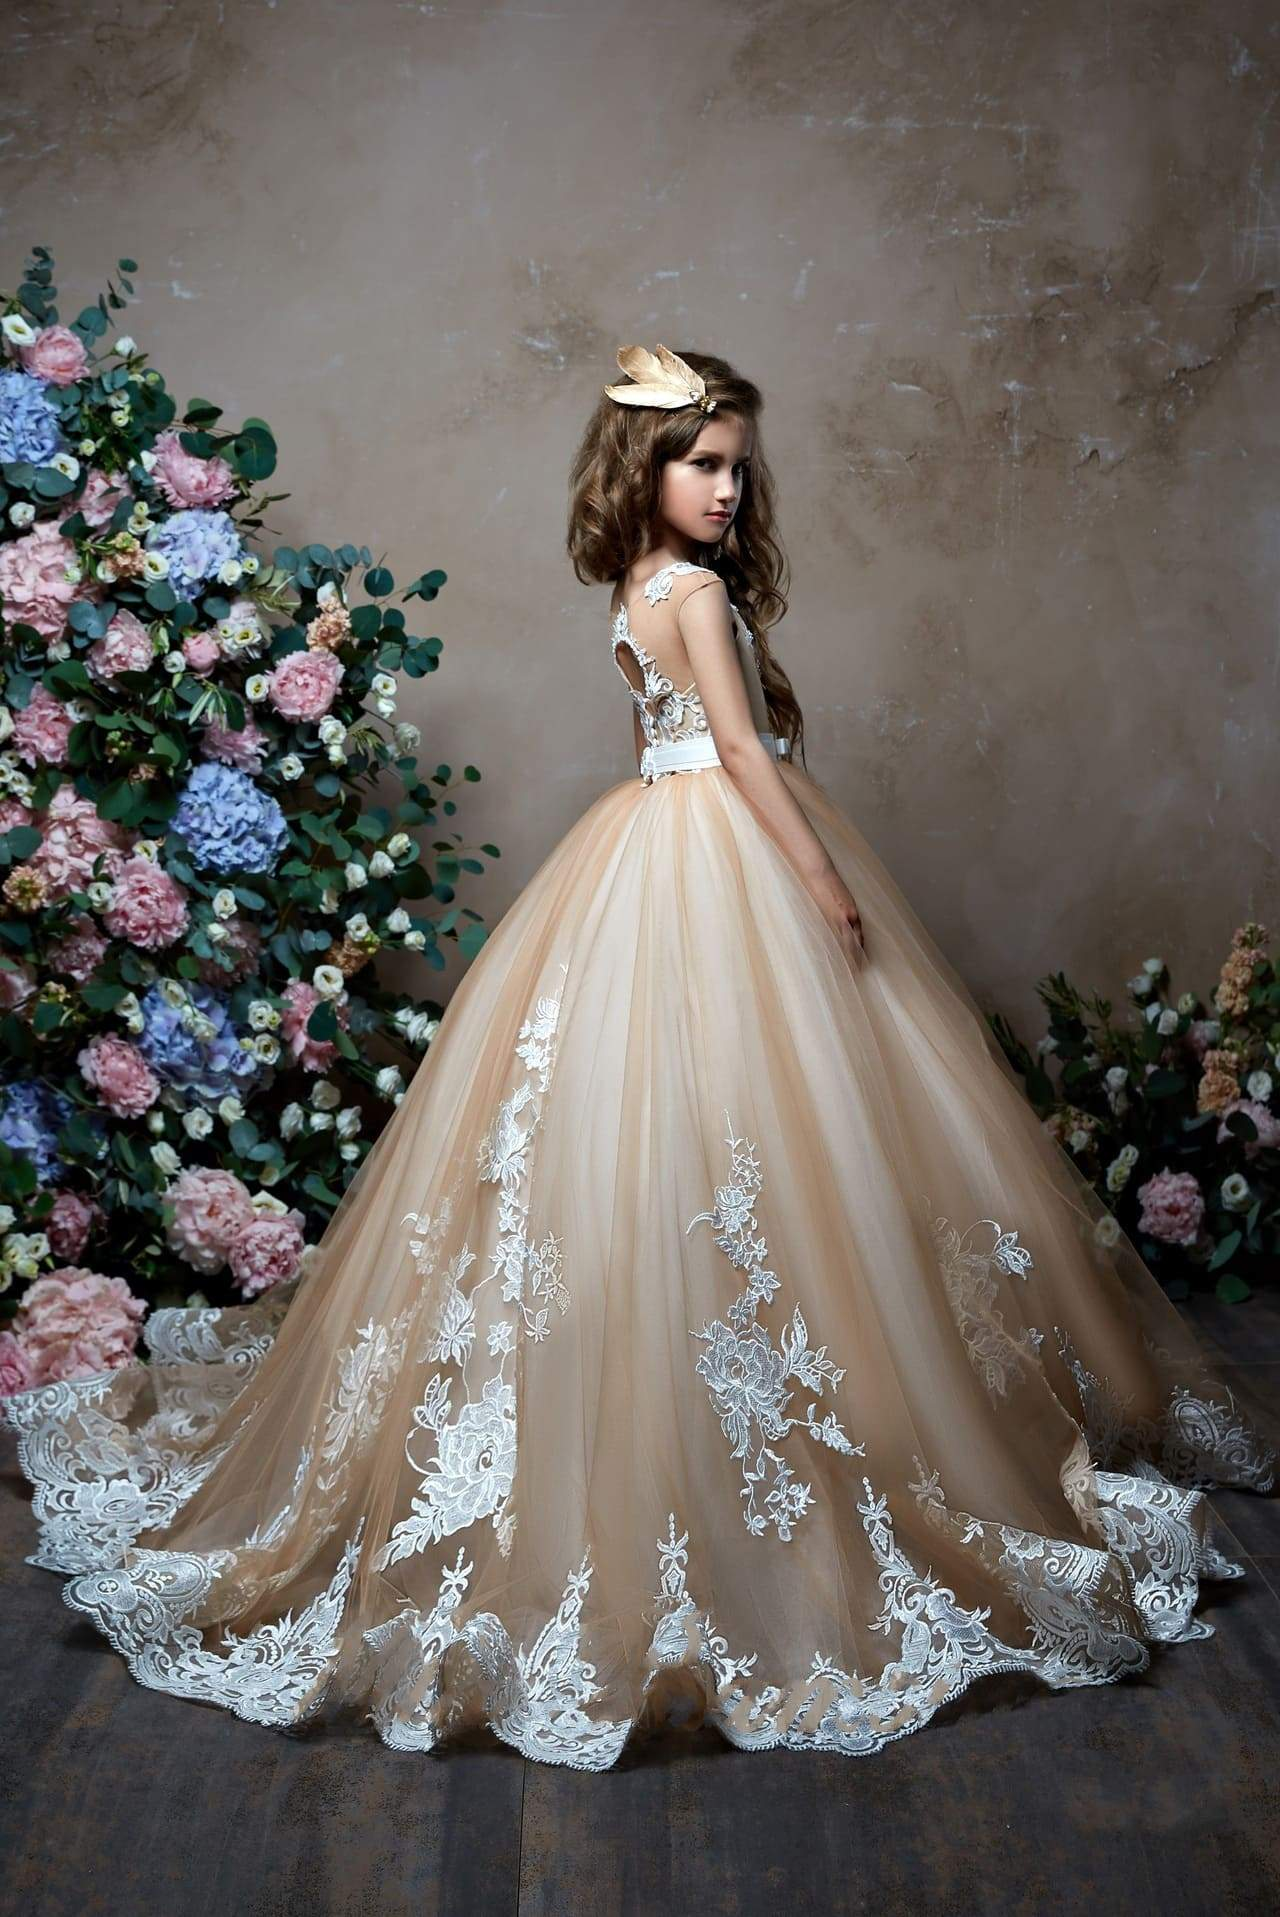 60886be1eb Tulle and Lace Princess Ball Gown with Illusion Neckline for Flower Girl